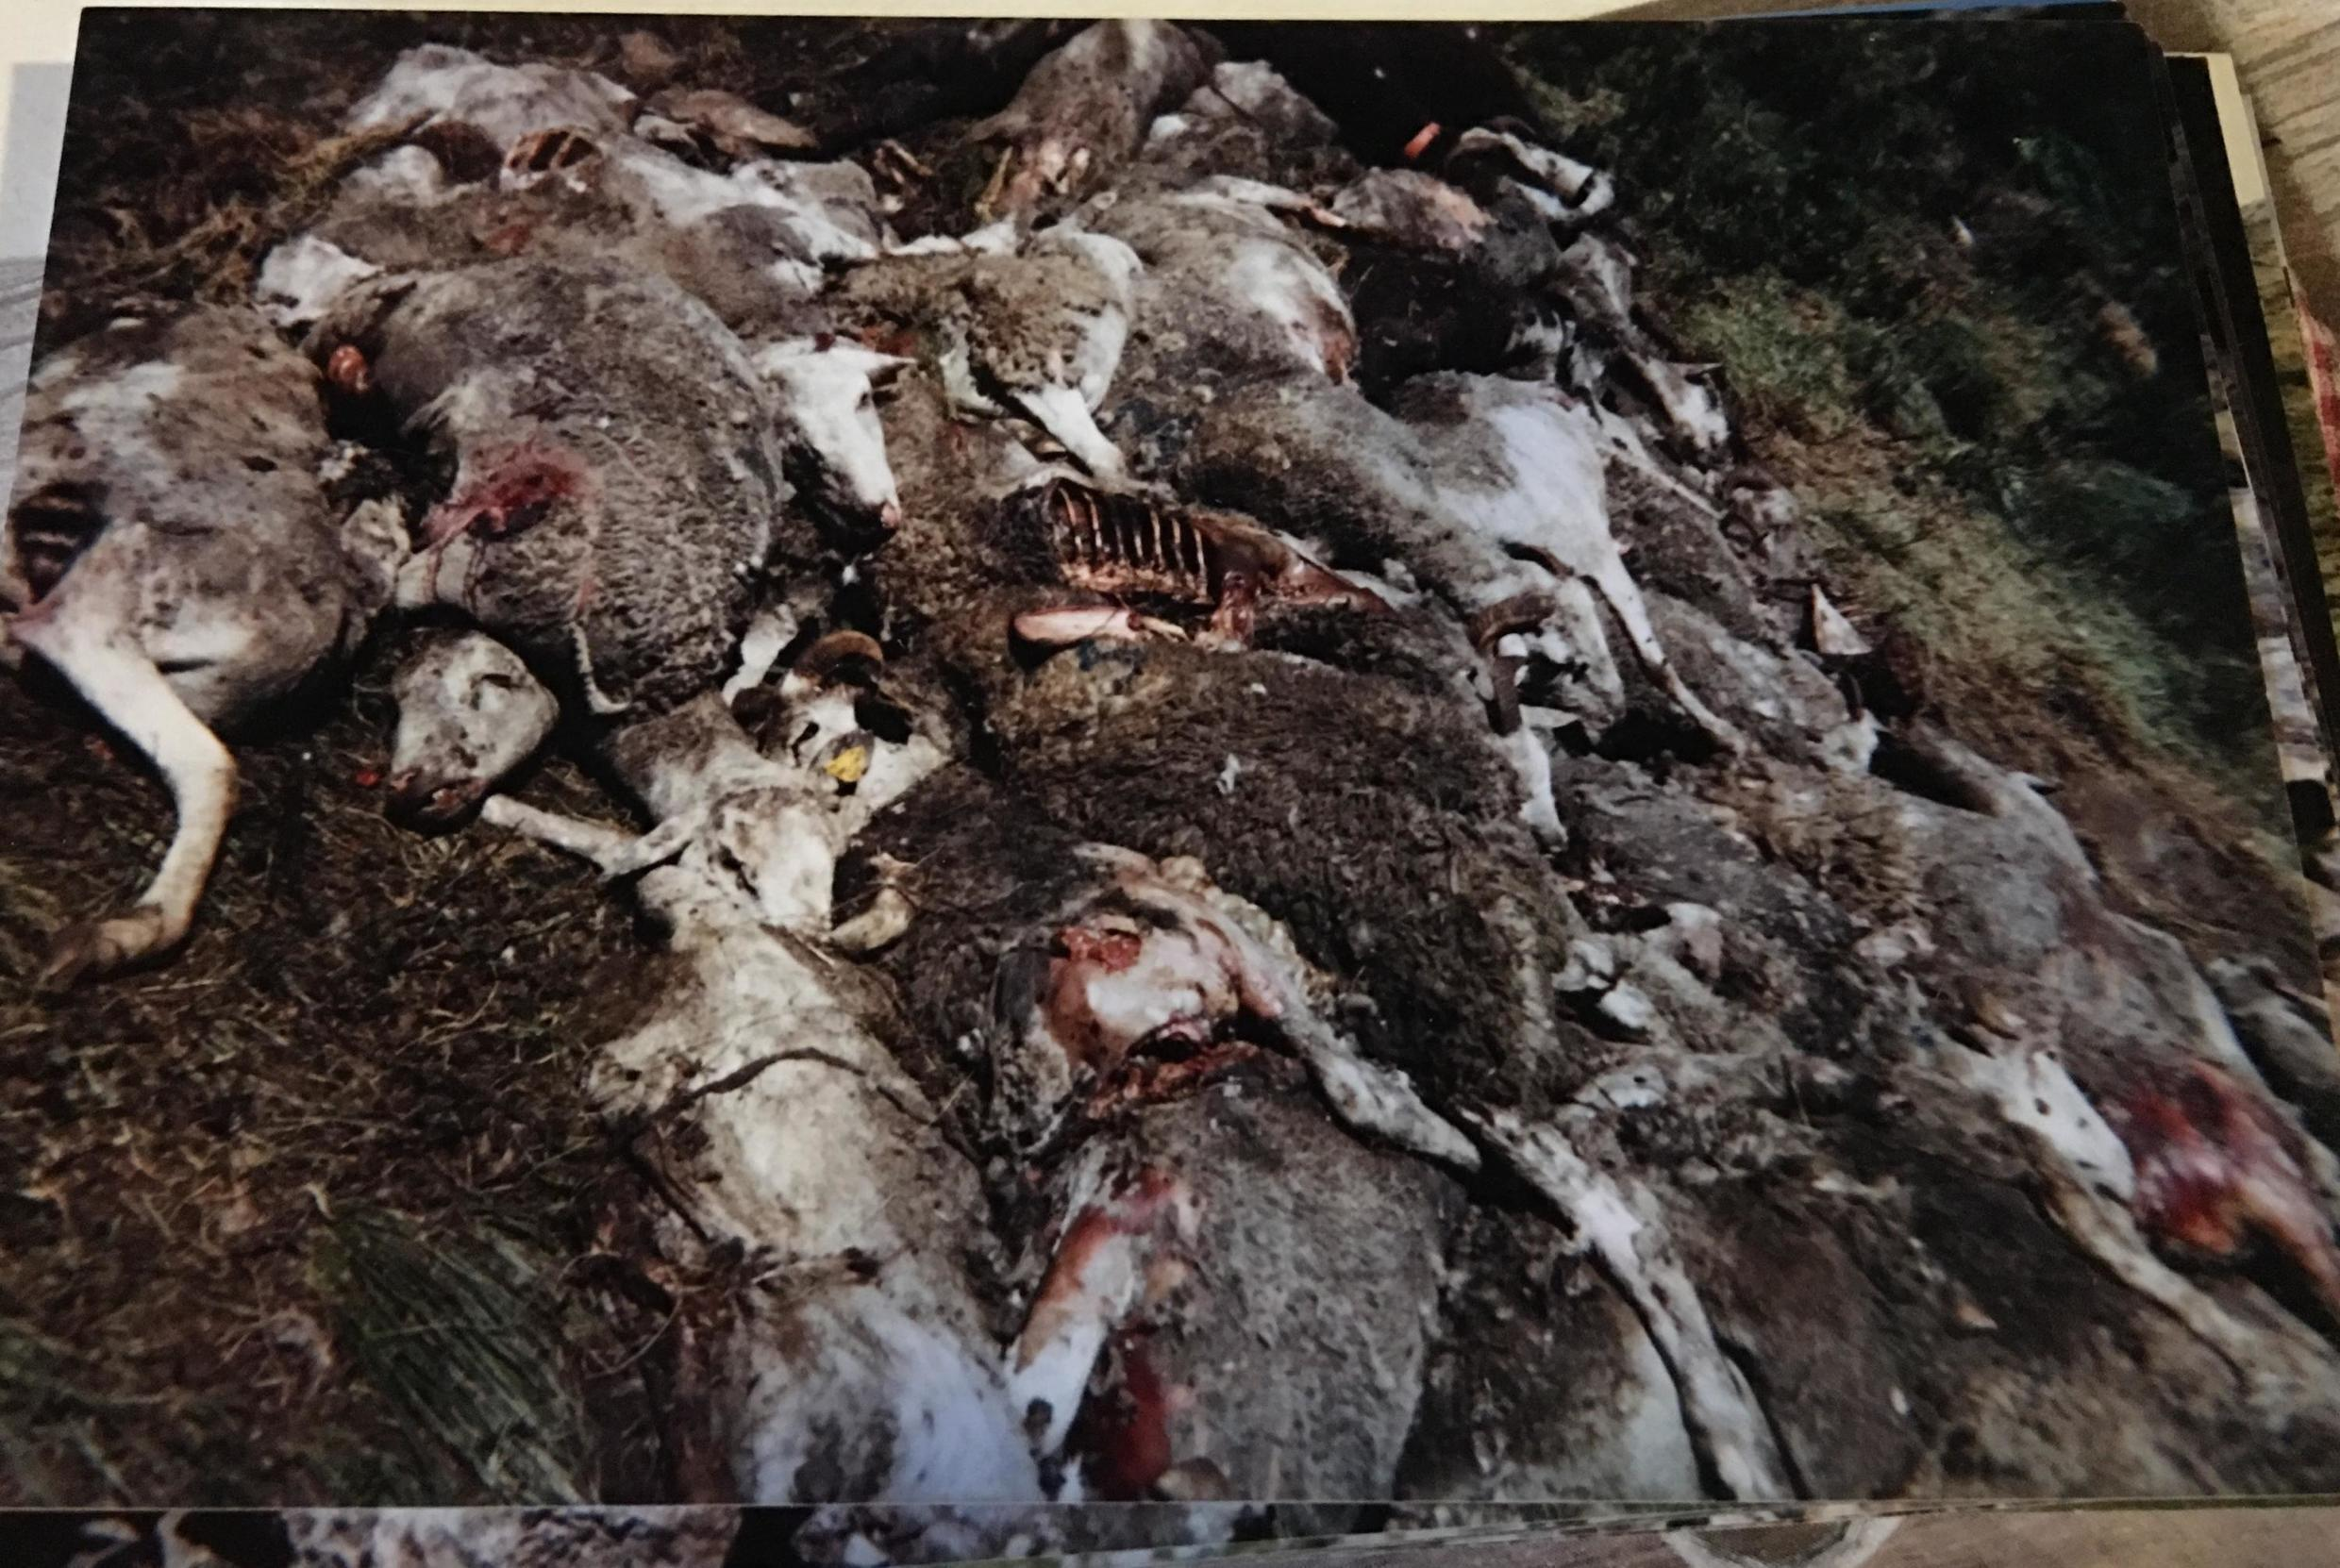 Mirouze's photographs date from the first time sheep his fell en masse from a cliff in 2005. Many sheep that survive such falls have broken jaws, ribs and hooves, as well as ruptured organs, and have to be euthanized.